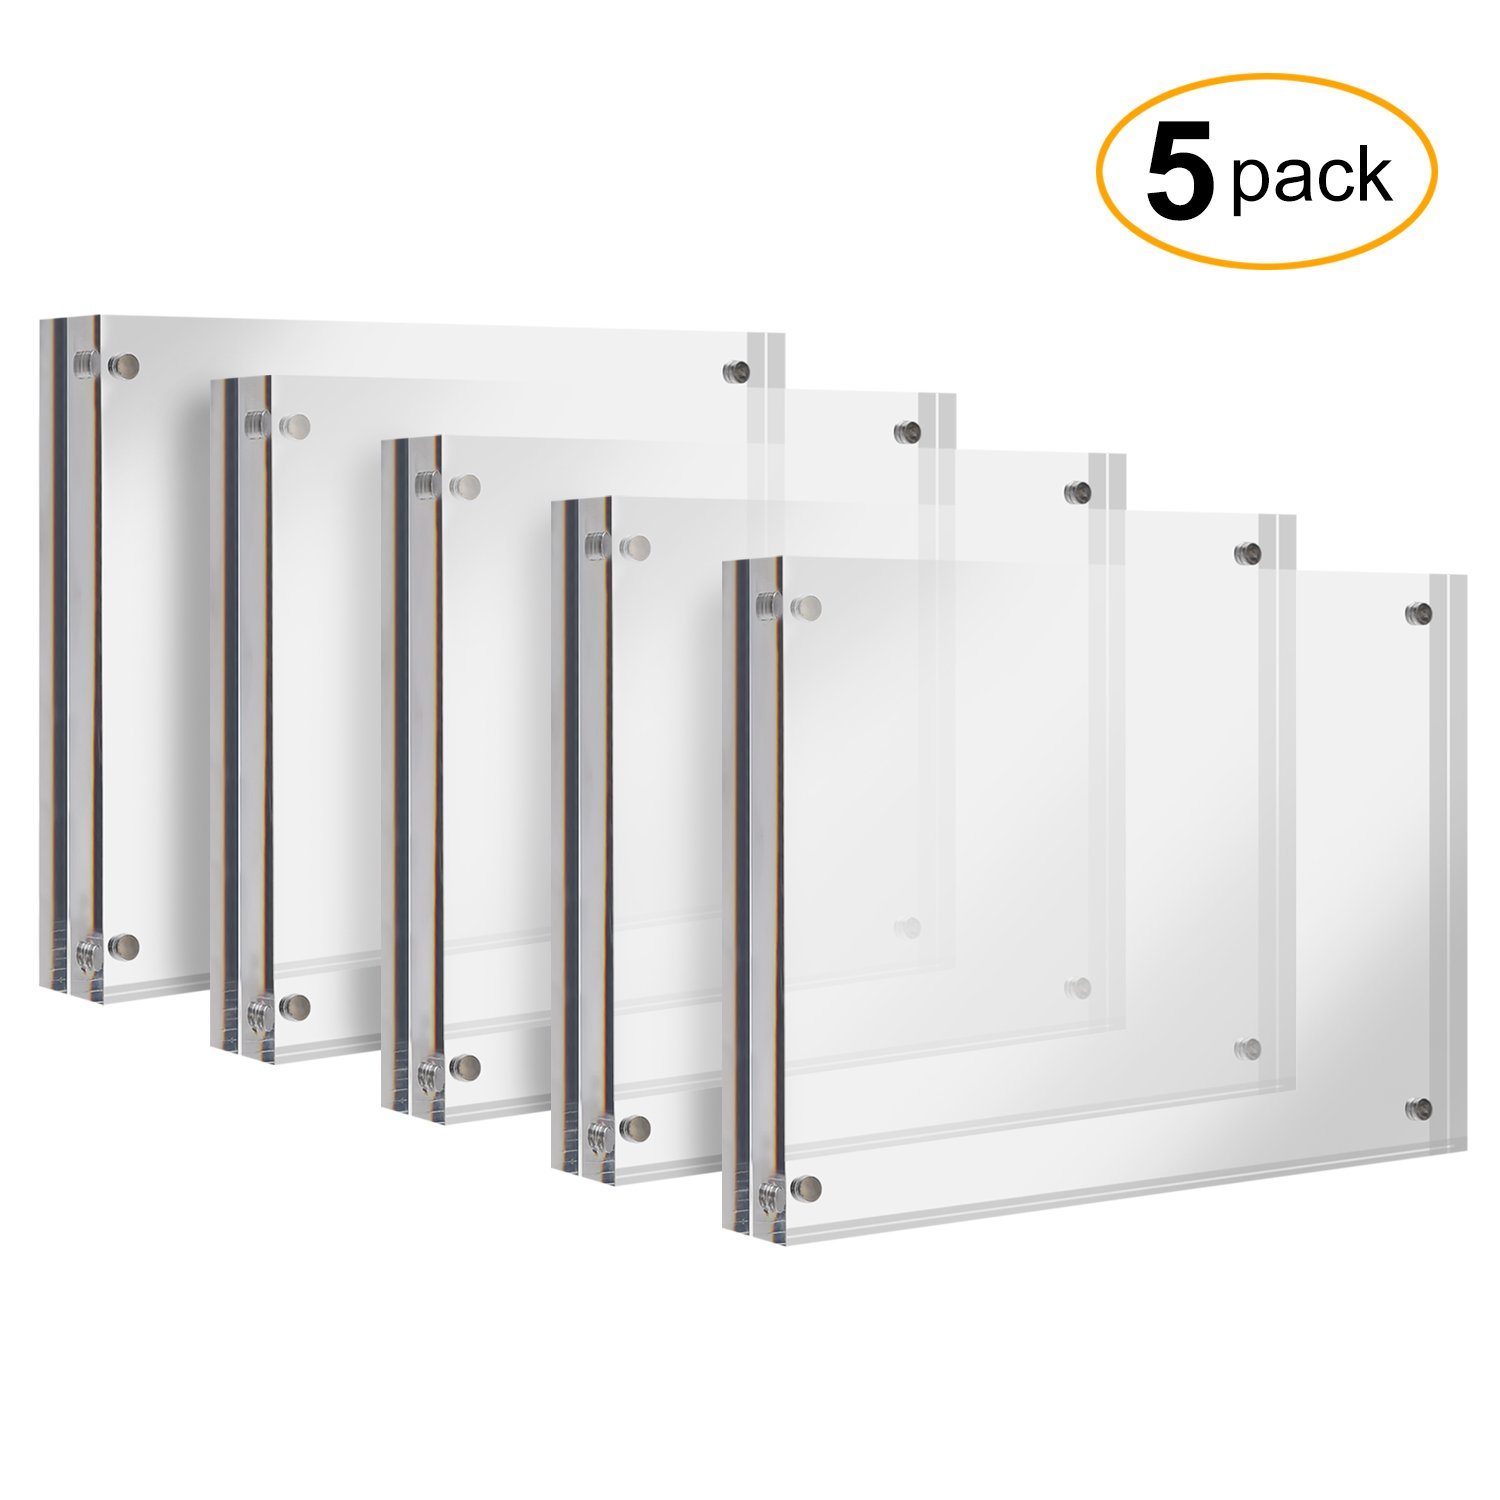 Cheap Double Sided Frames Picture Frames, find Double Sided Frames ...